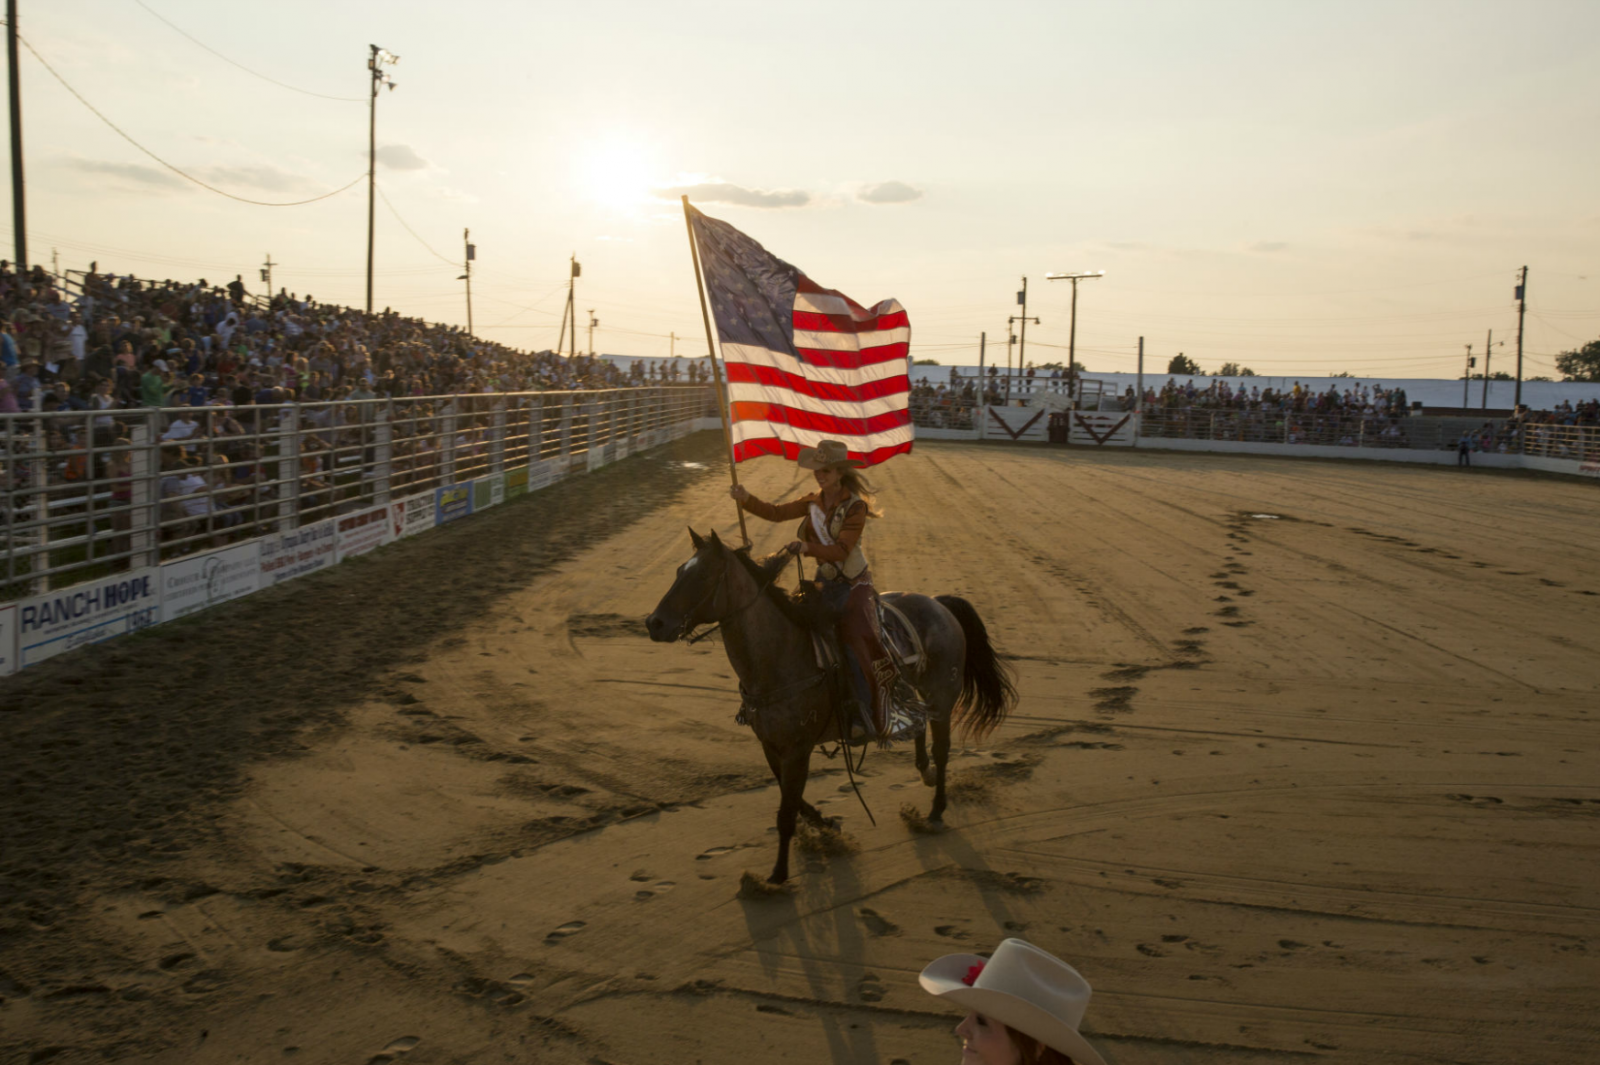 2015 Miss Rodeo America LAUREN HEATON, in the arena at Cowtown Rodeo, in Woodstown, NJ. (July 11, 2015/Kevin C. Downs/Cosmos)